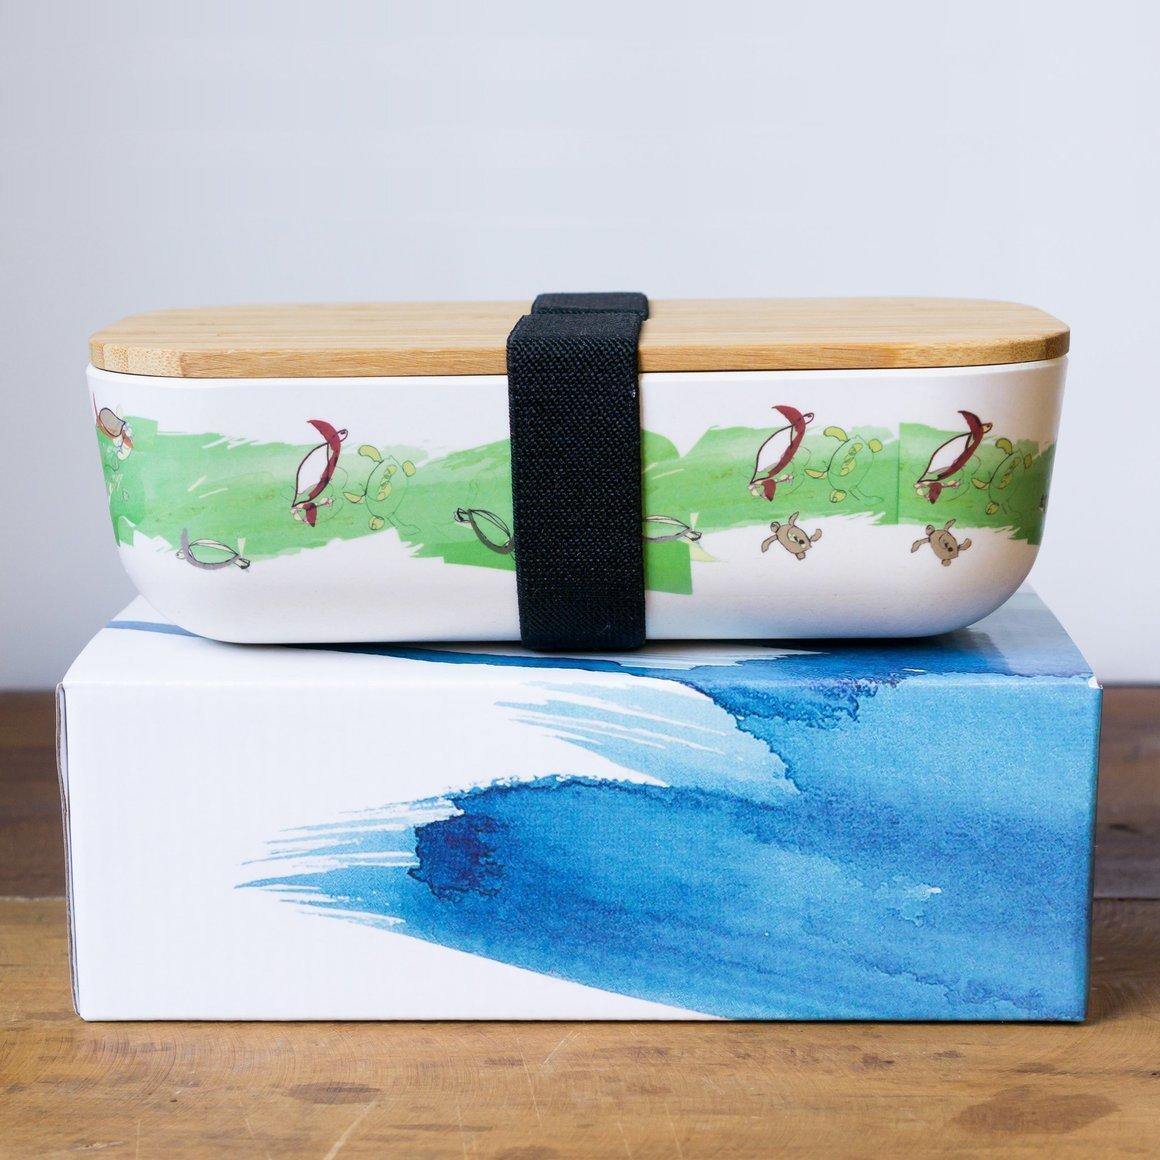 Bamboo lunch box with green turtle design | Trada Marketplace